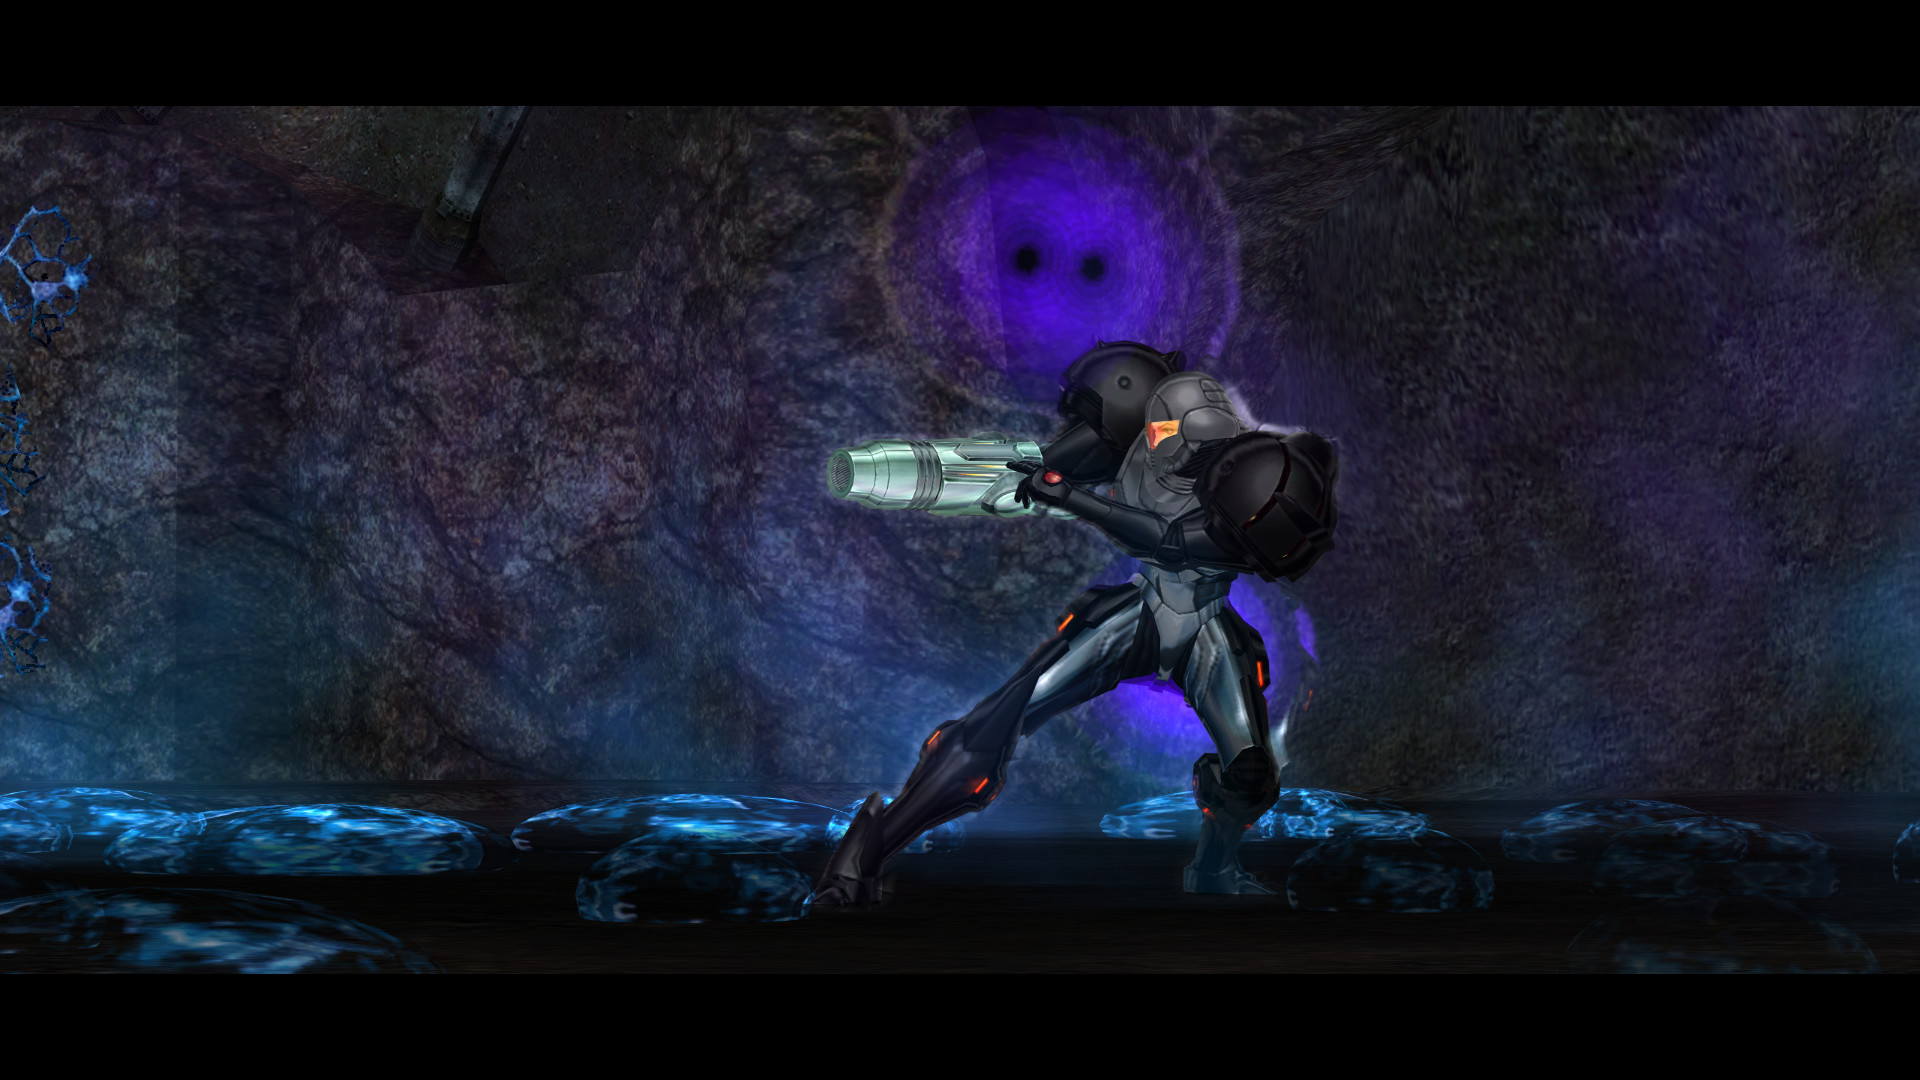 Explore More Wallpapers in the Metroid Prime Subcategory!